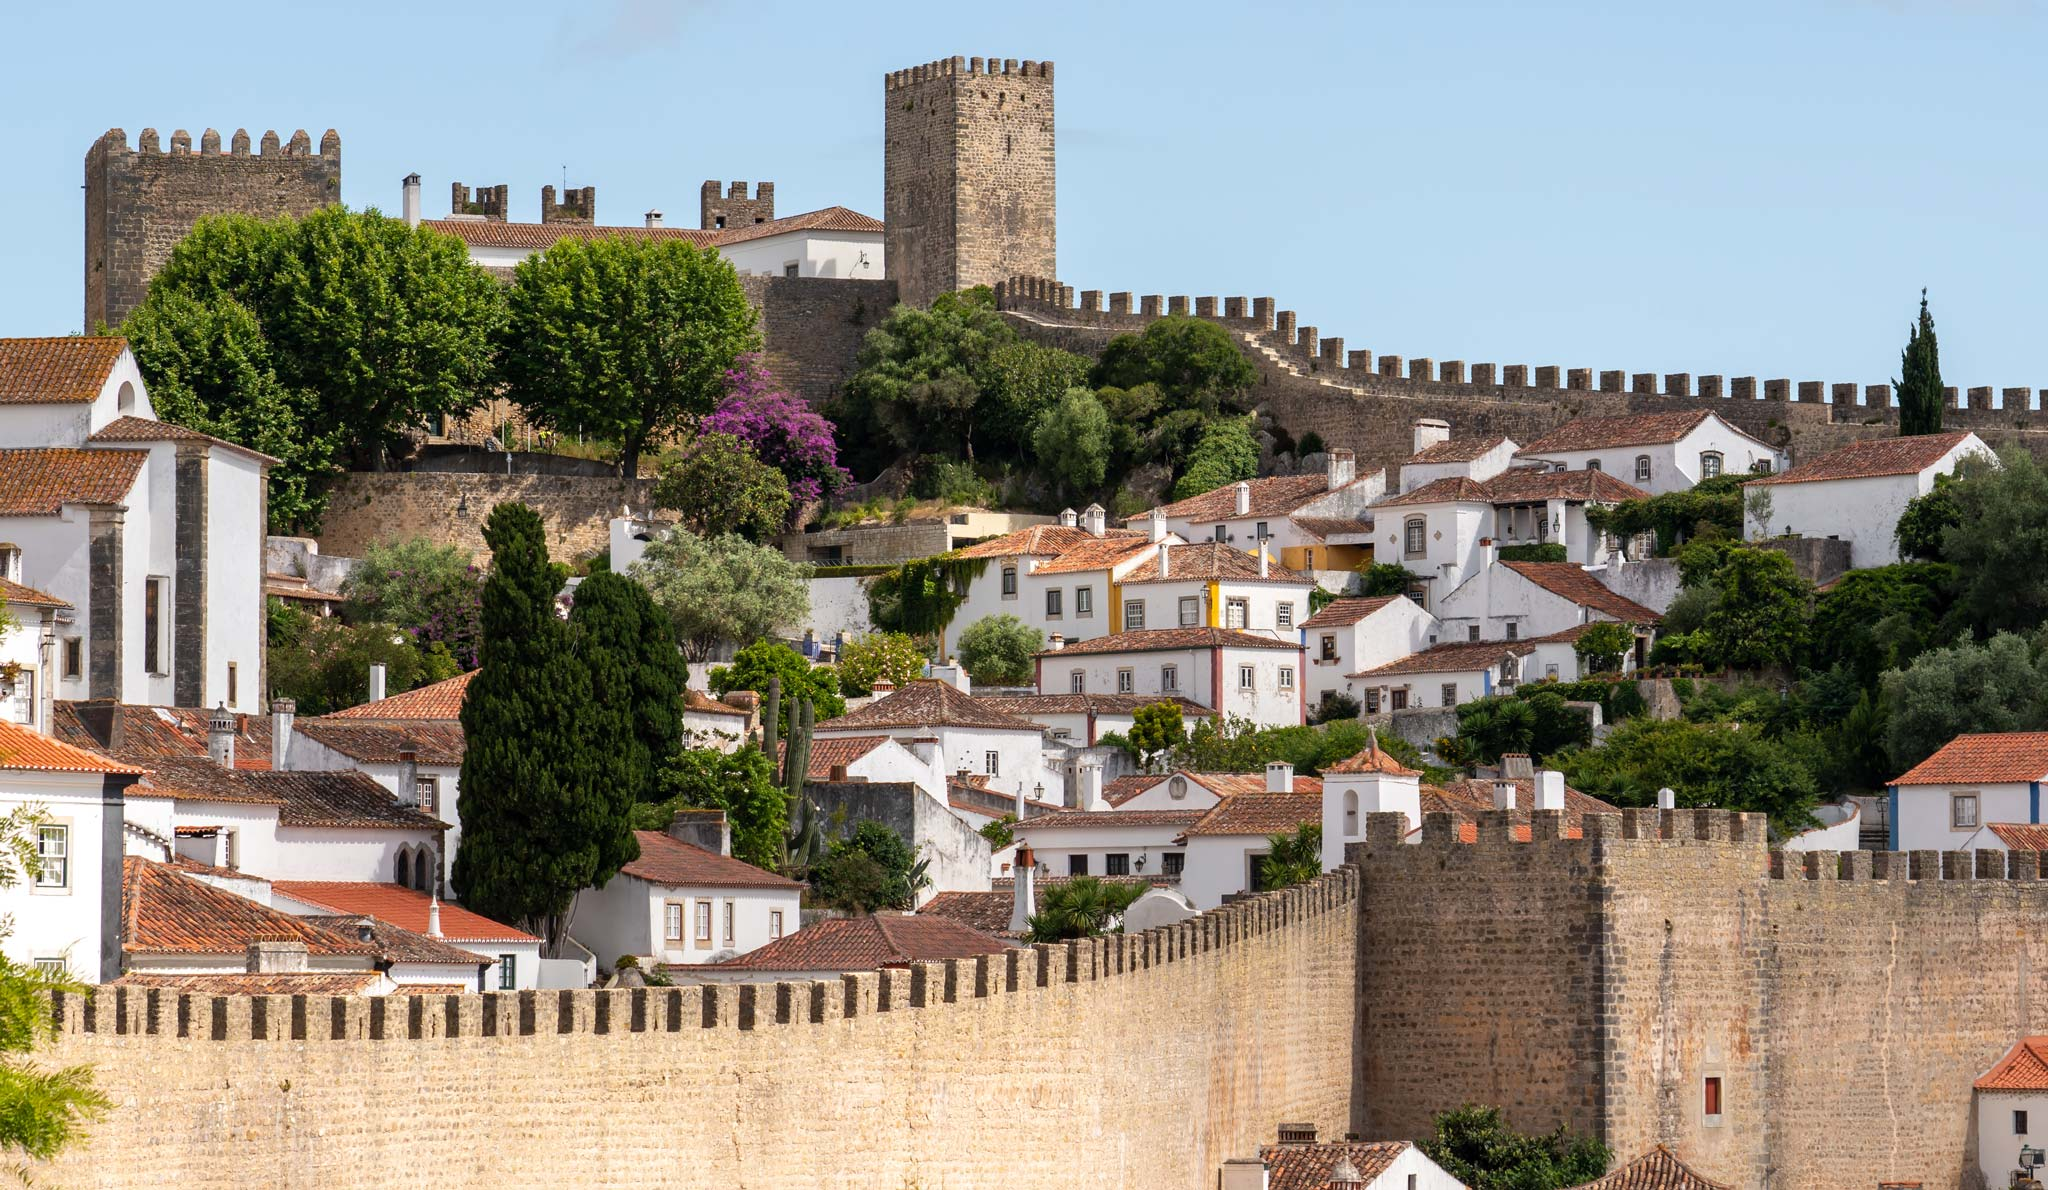 Popular tourist sights like Obidos were basically empty when I visited in June